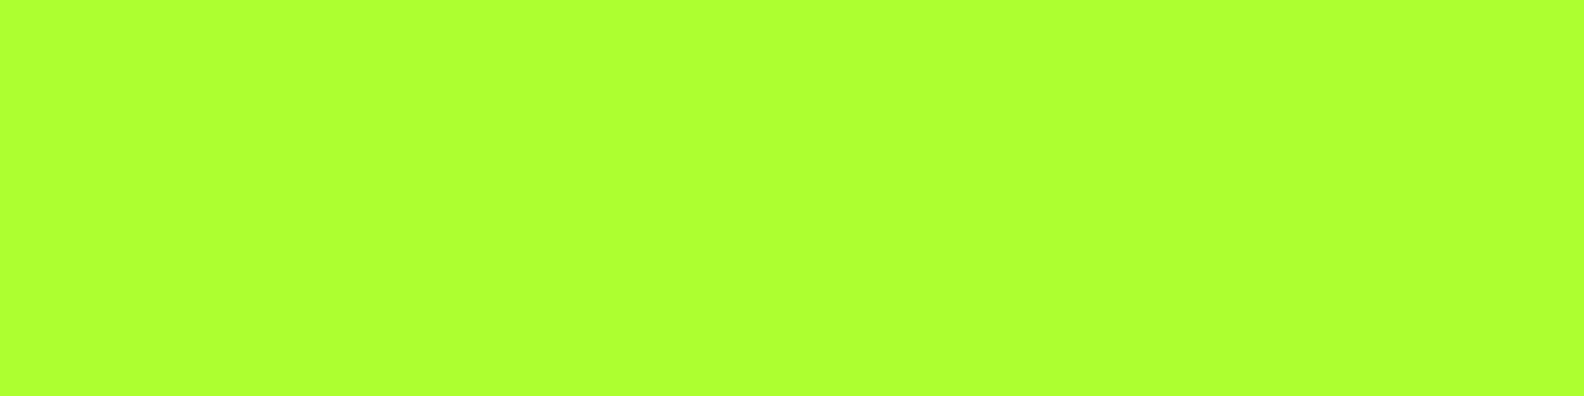 1584x396 Green-yellow Solid Color Background